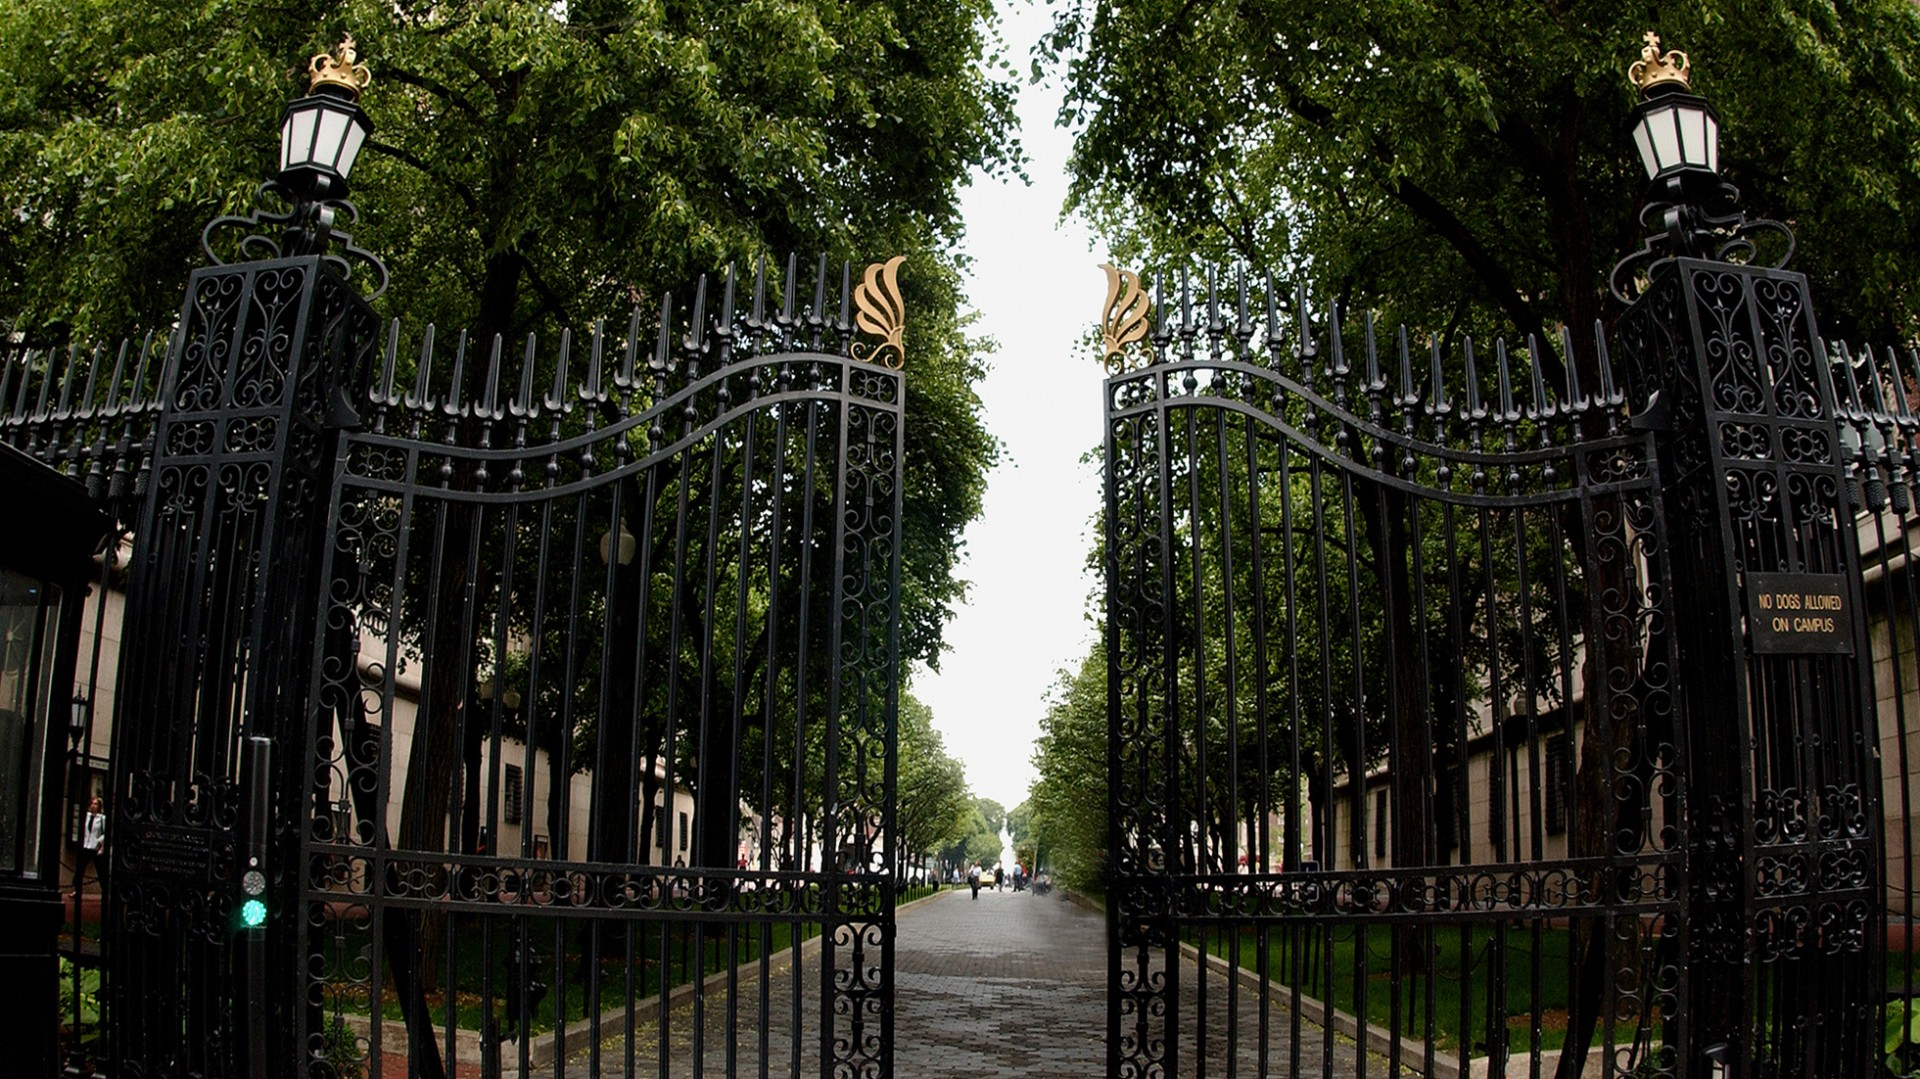 The Columbia gates at 116th street, in front of a tree-lined path